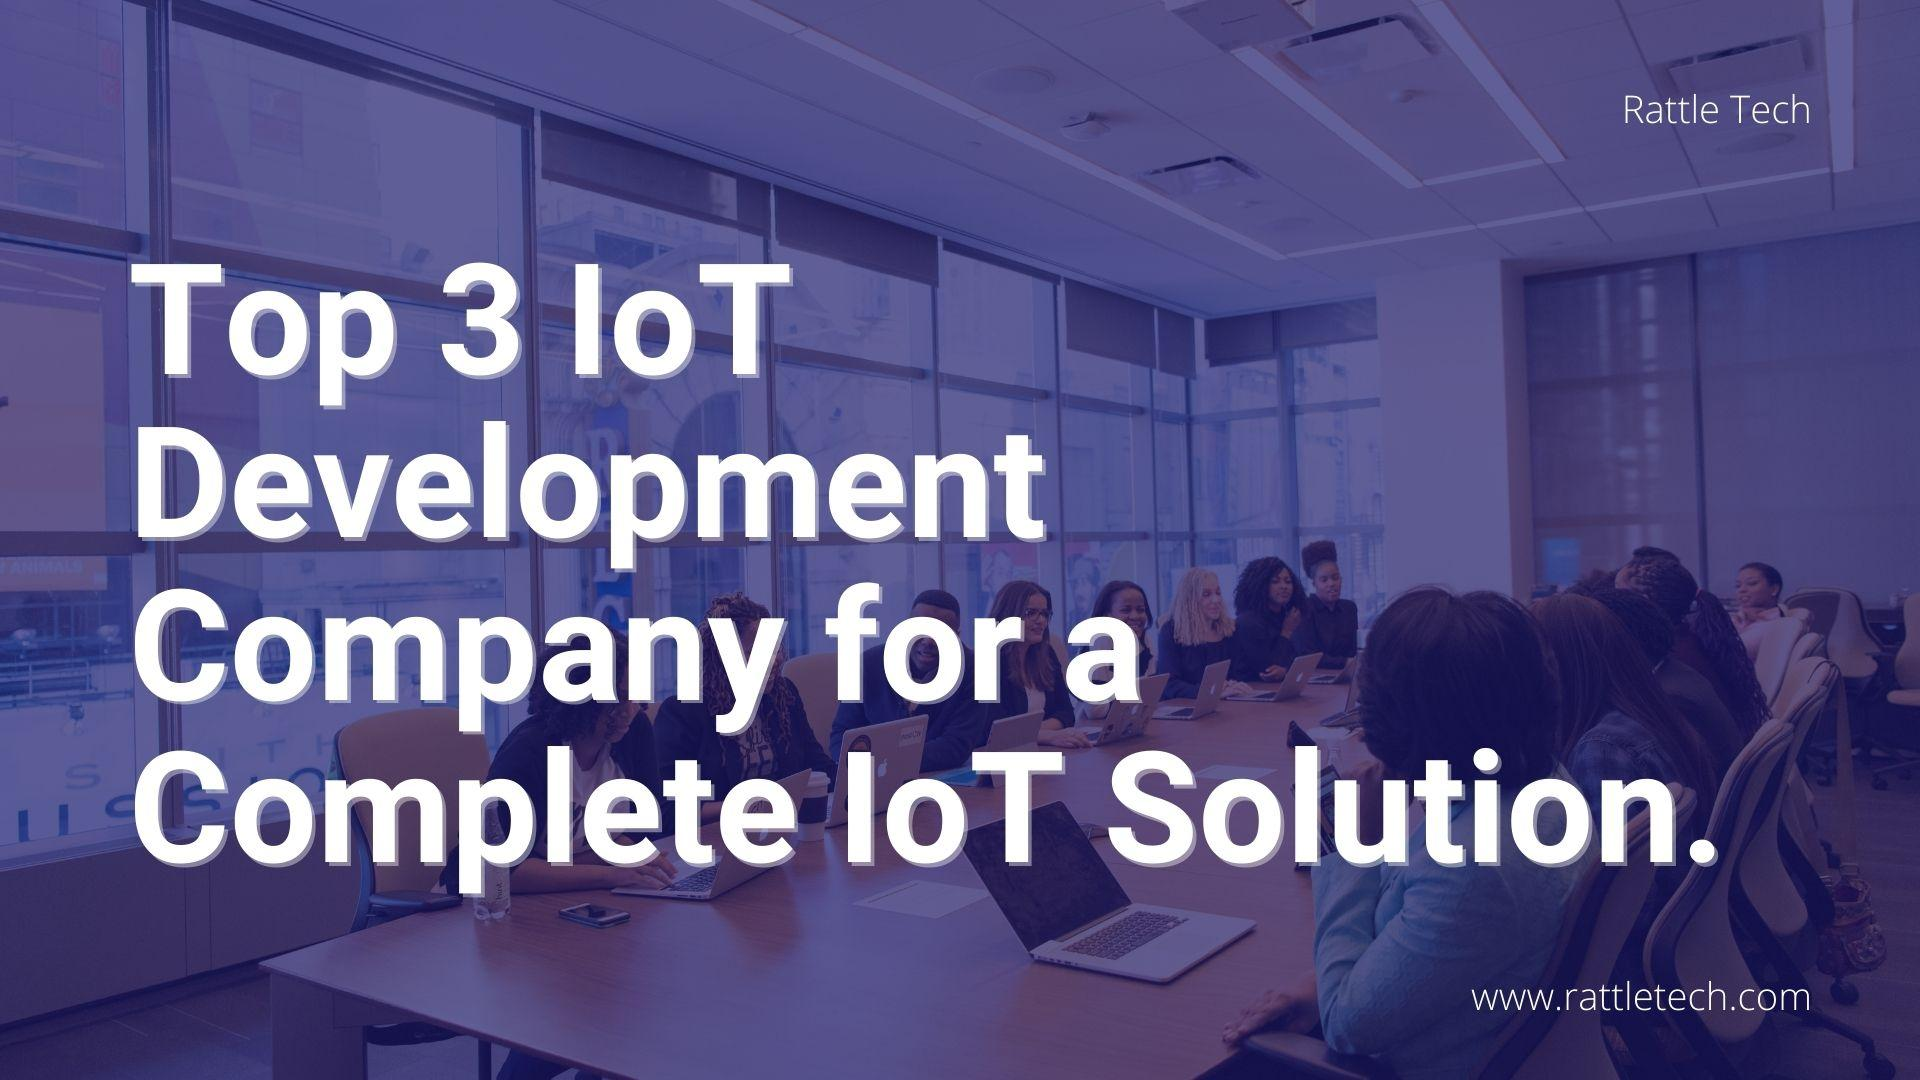 Top 3 IoT Development Company for a Complete IoT Solution.